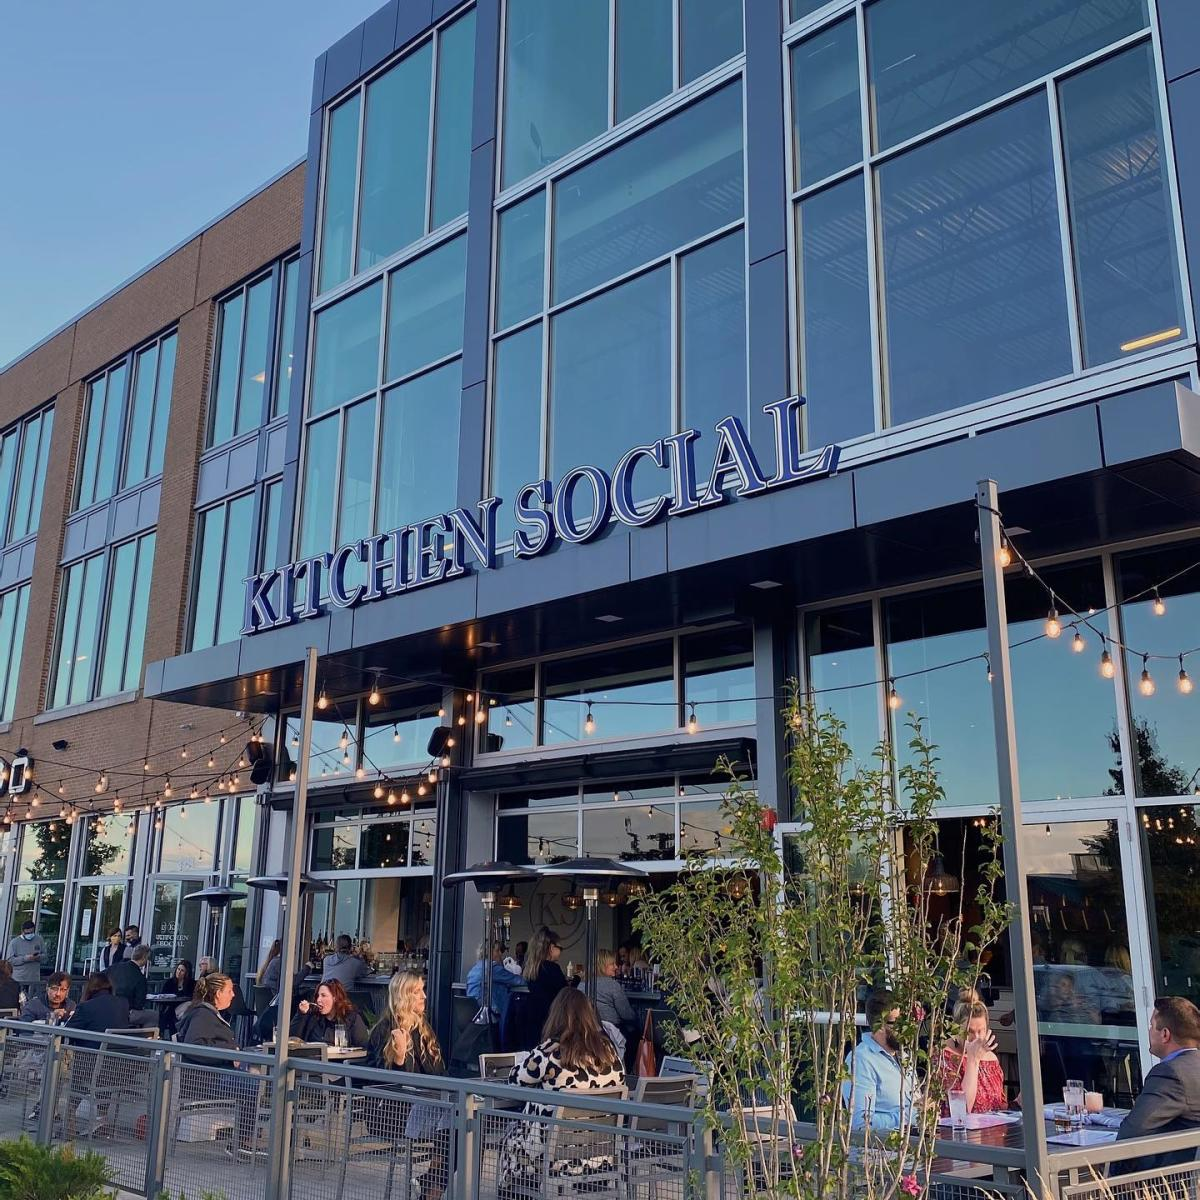 Central Ohio Favorite Kitchen Social Coming To Dublin